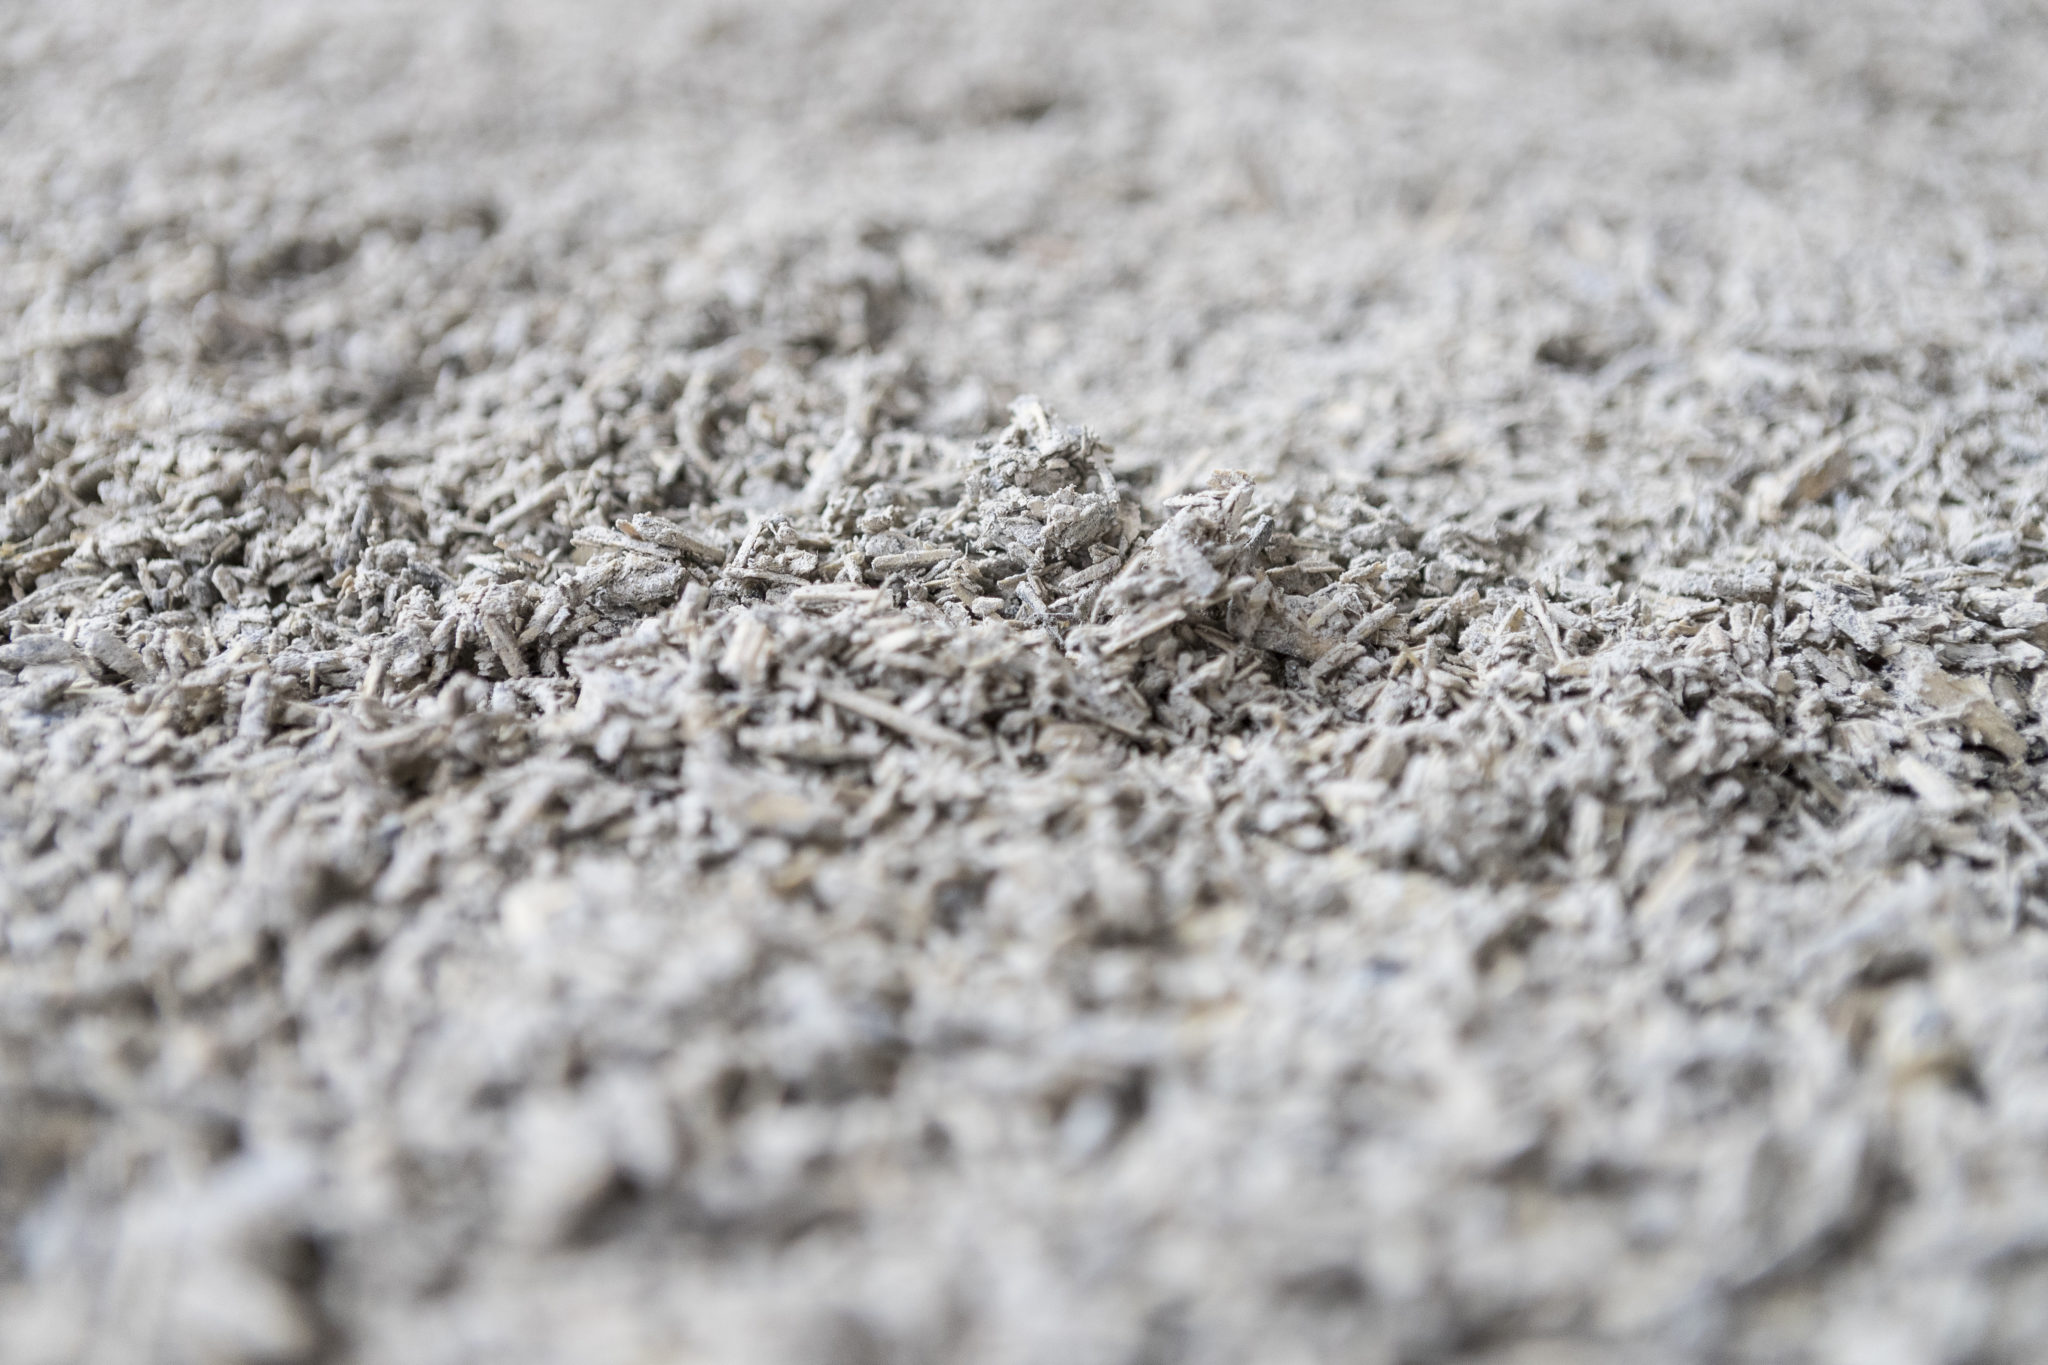 Hempcrete, made from the core of the hemp plant, could be an essential ingredient in sustainable building in the near future. Photo: Raw hempcrete made from finely chopped up cores (hurds) of hemp plants.